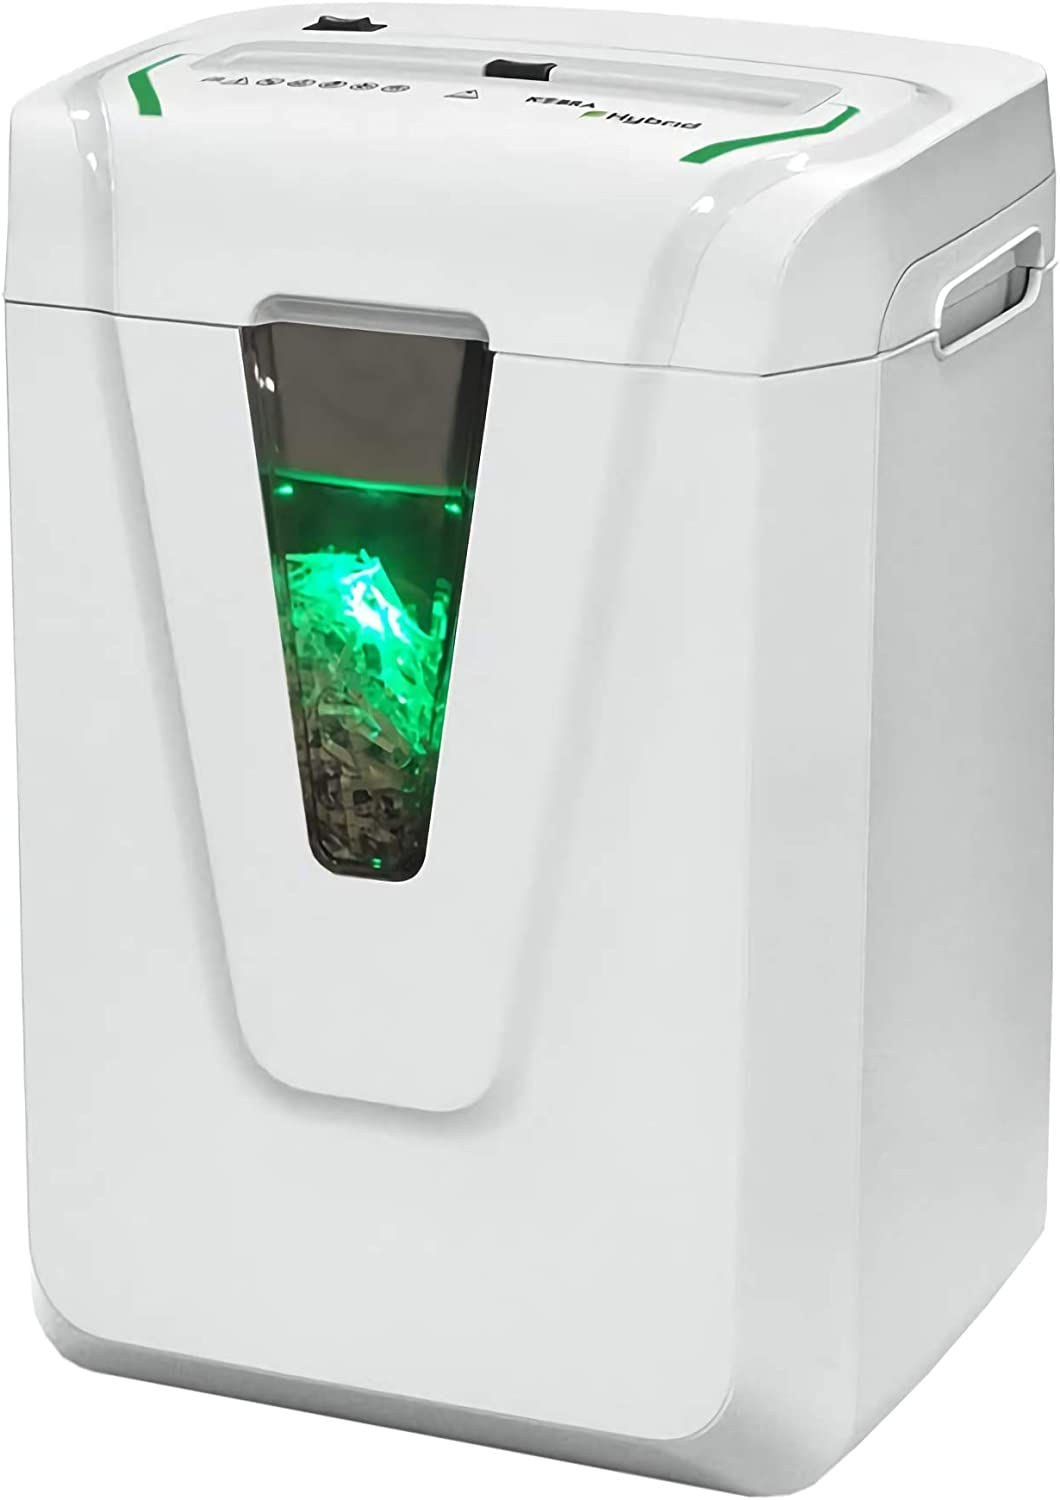 Kobra Hybrid-S Cross-Cut Paper Shredder, 24 Hours Continuous Operation, Exclusive Hybrid Technology, 12-14 Sheet, Made in Italy